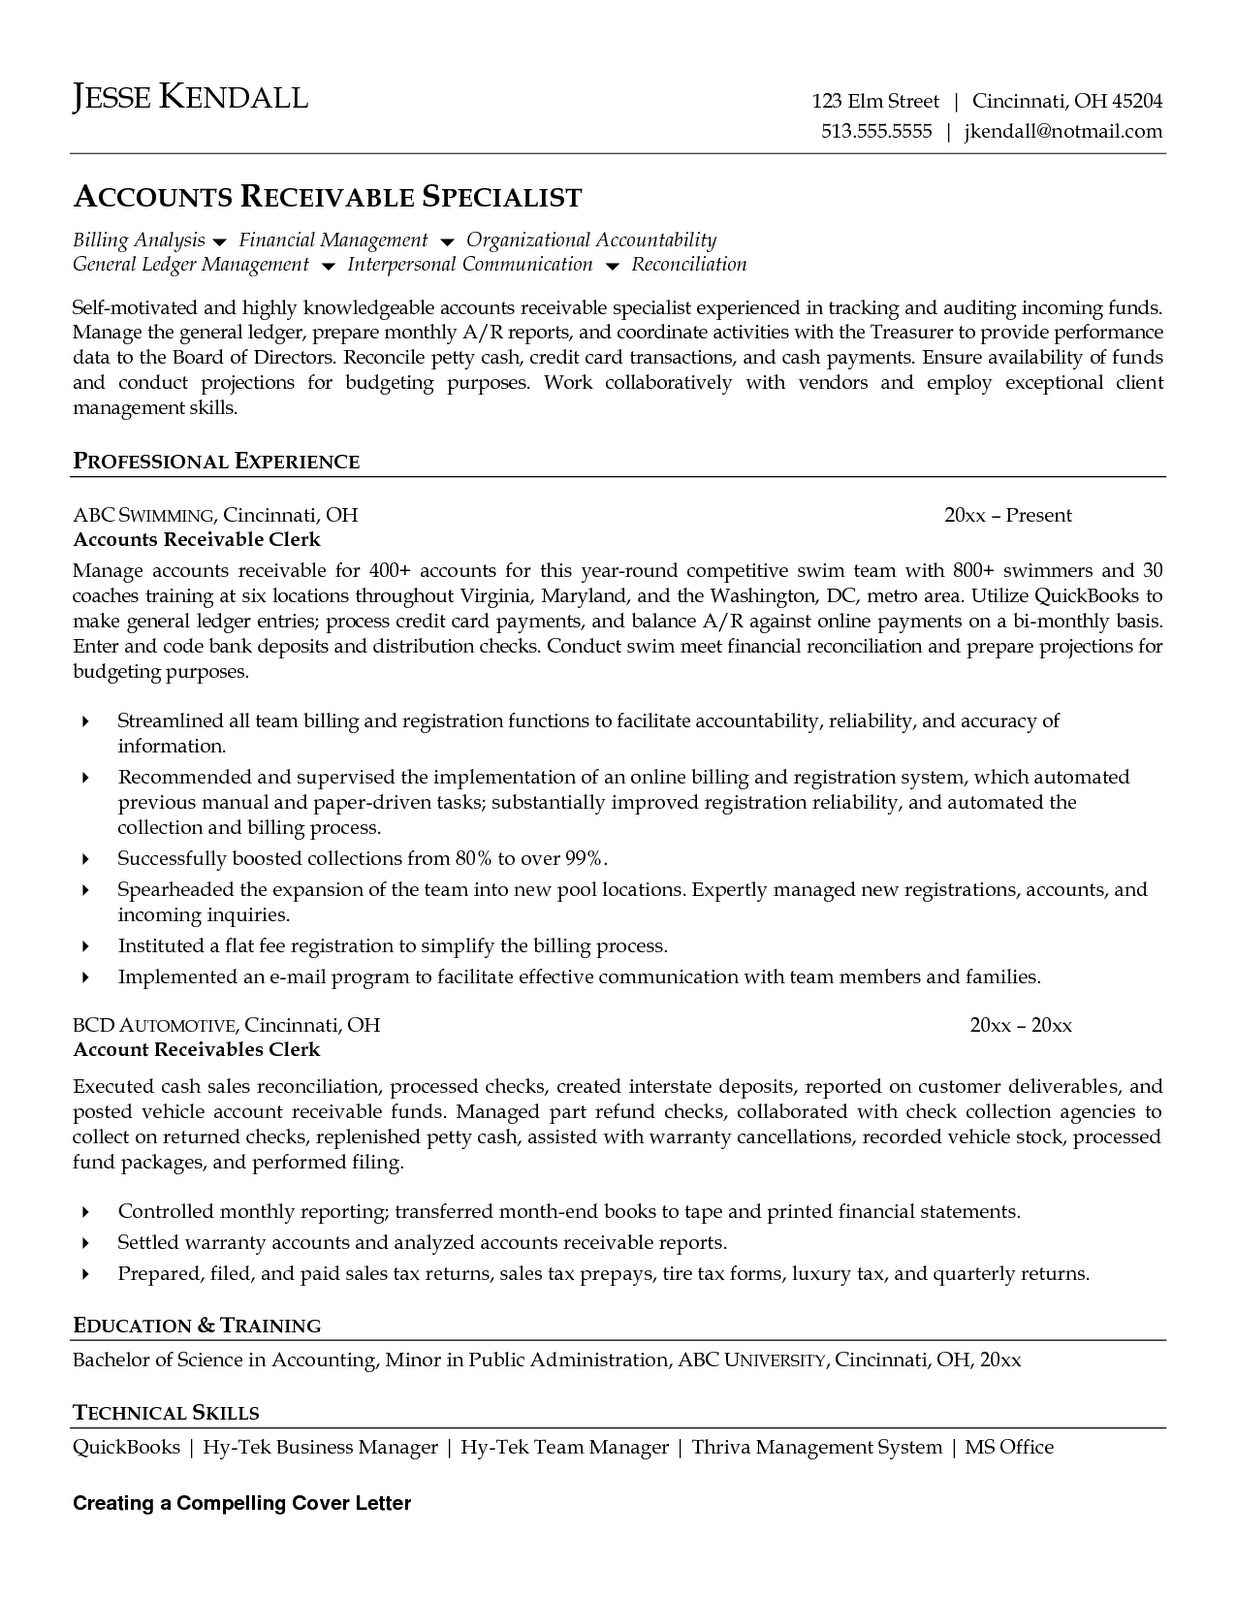 home health aide resume care home cover letter dietary aide ...